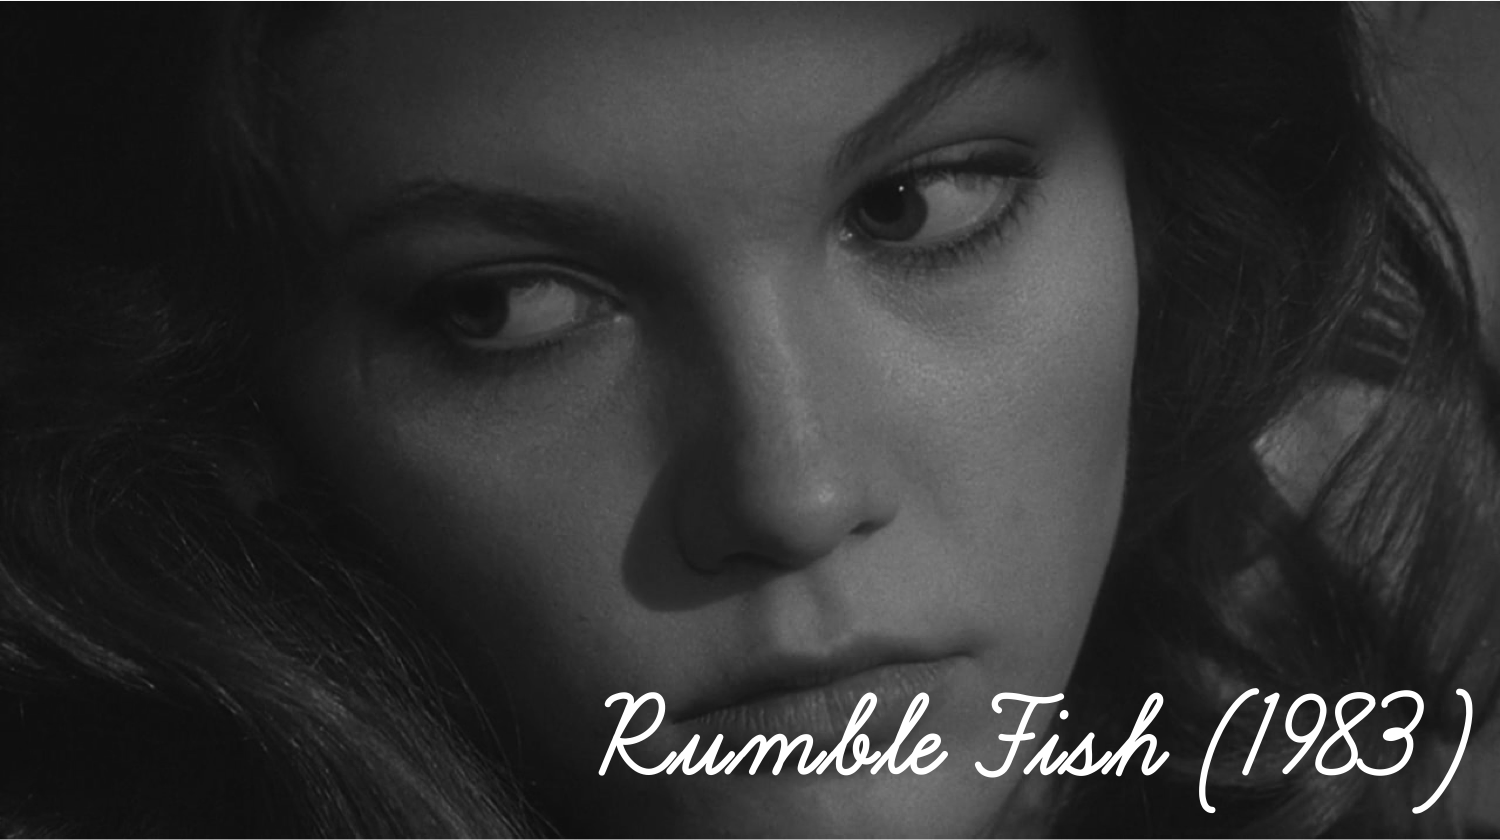 5 paragraph essay on rumble fish Strong essays: essay on rumble fish journal - journal#1 i started out kind of confused rusty-james, the main character is talking to, i guess, an old friend i don't.